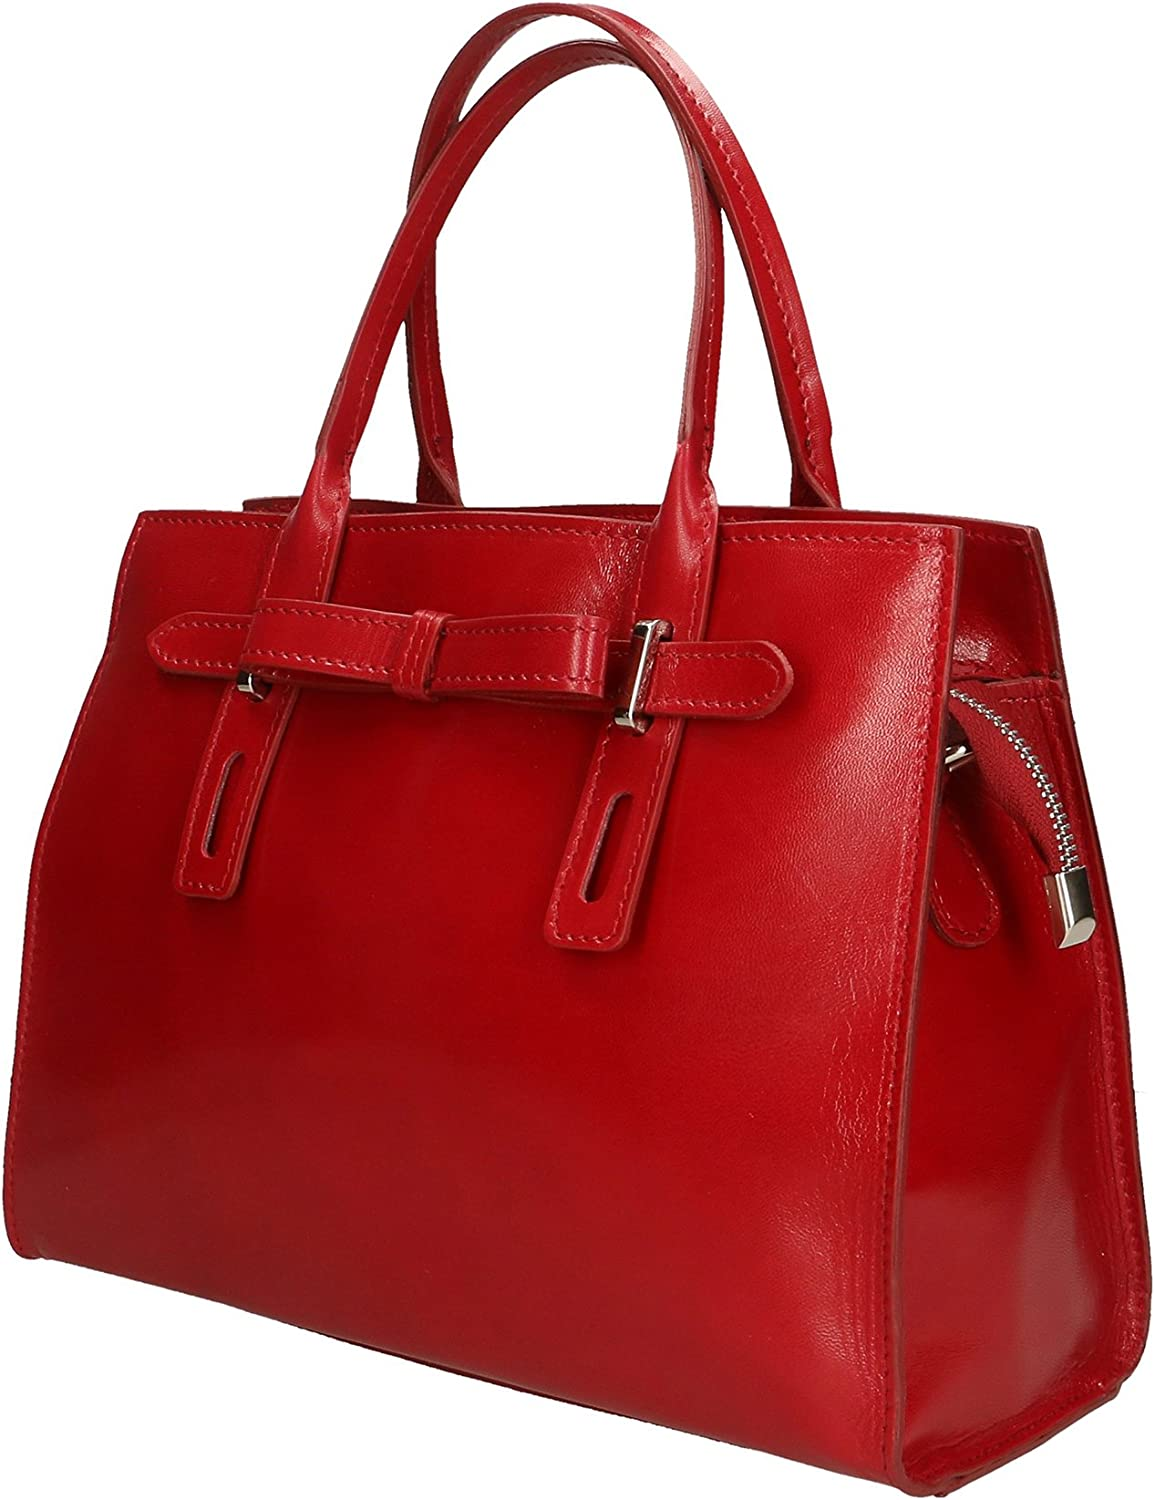 Chicca Borse Borsa a Mano Donna in Pelle Made in Italy 30x22x13 Cm Rosso